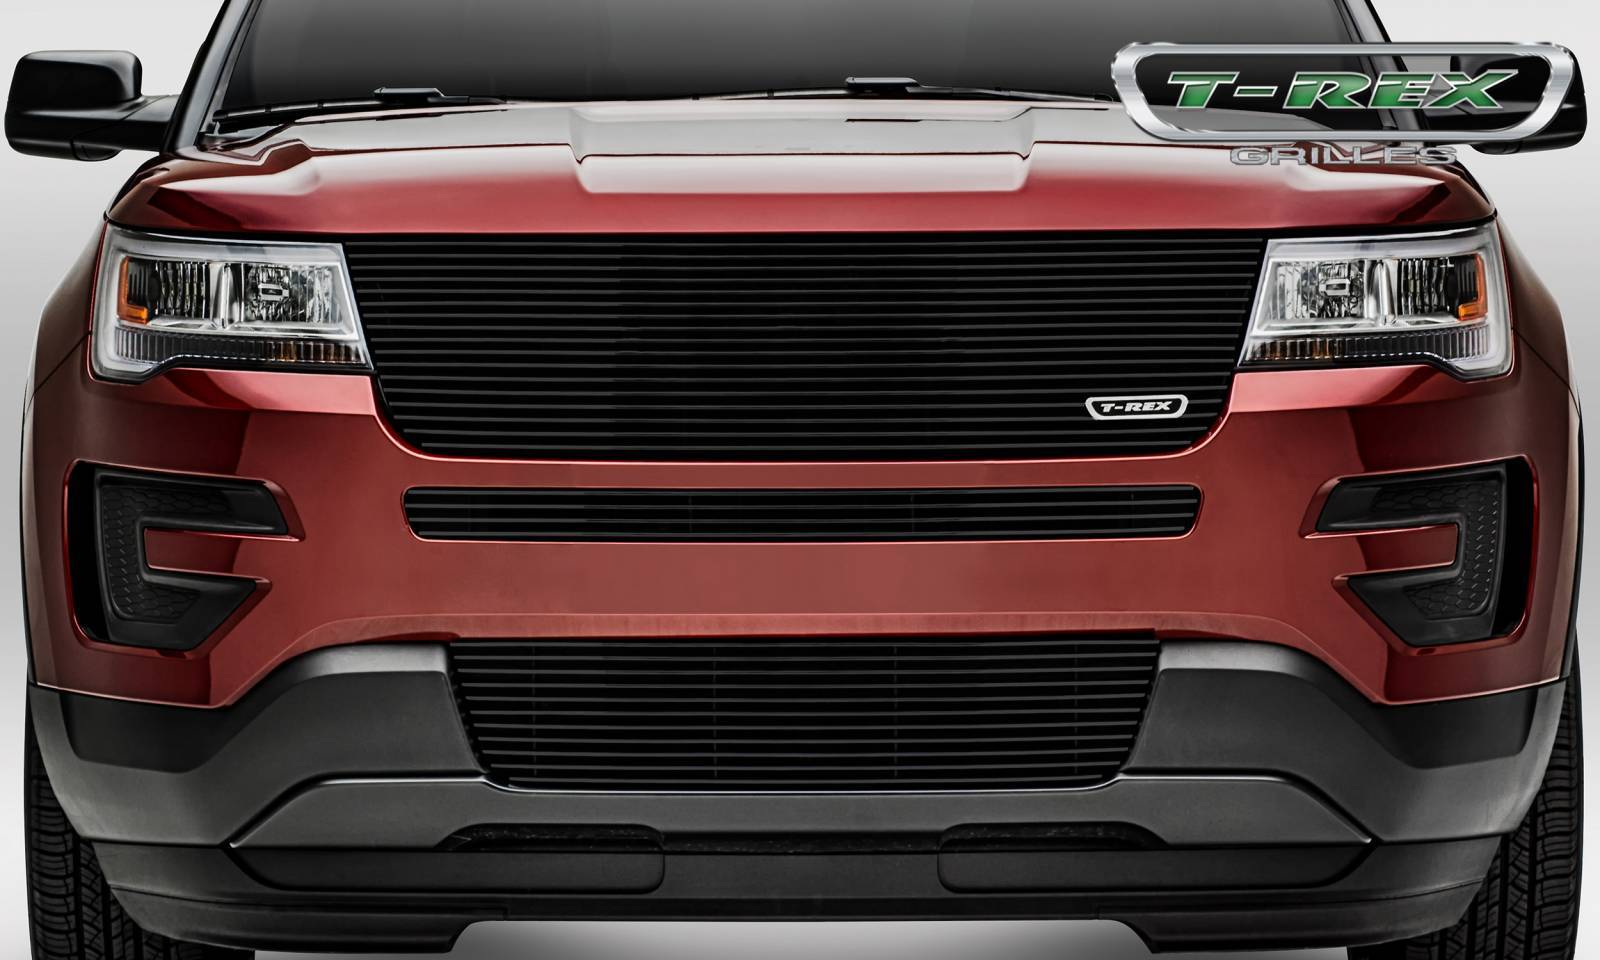 T-REX Ford Explorer - Laser Billet Series - Replacement - Main Grille w/o Logo Recess - Black Powder Coated - Pt # 6216651